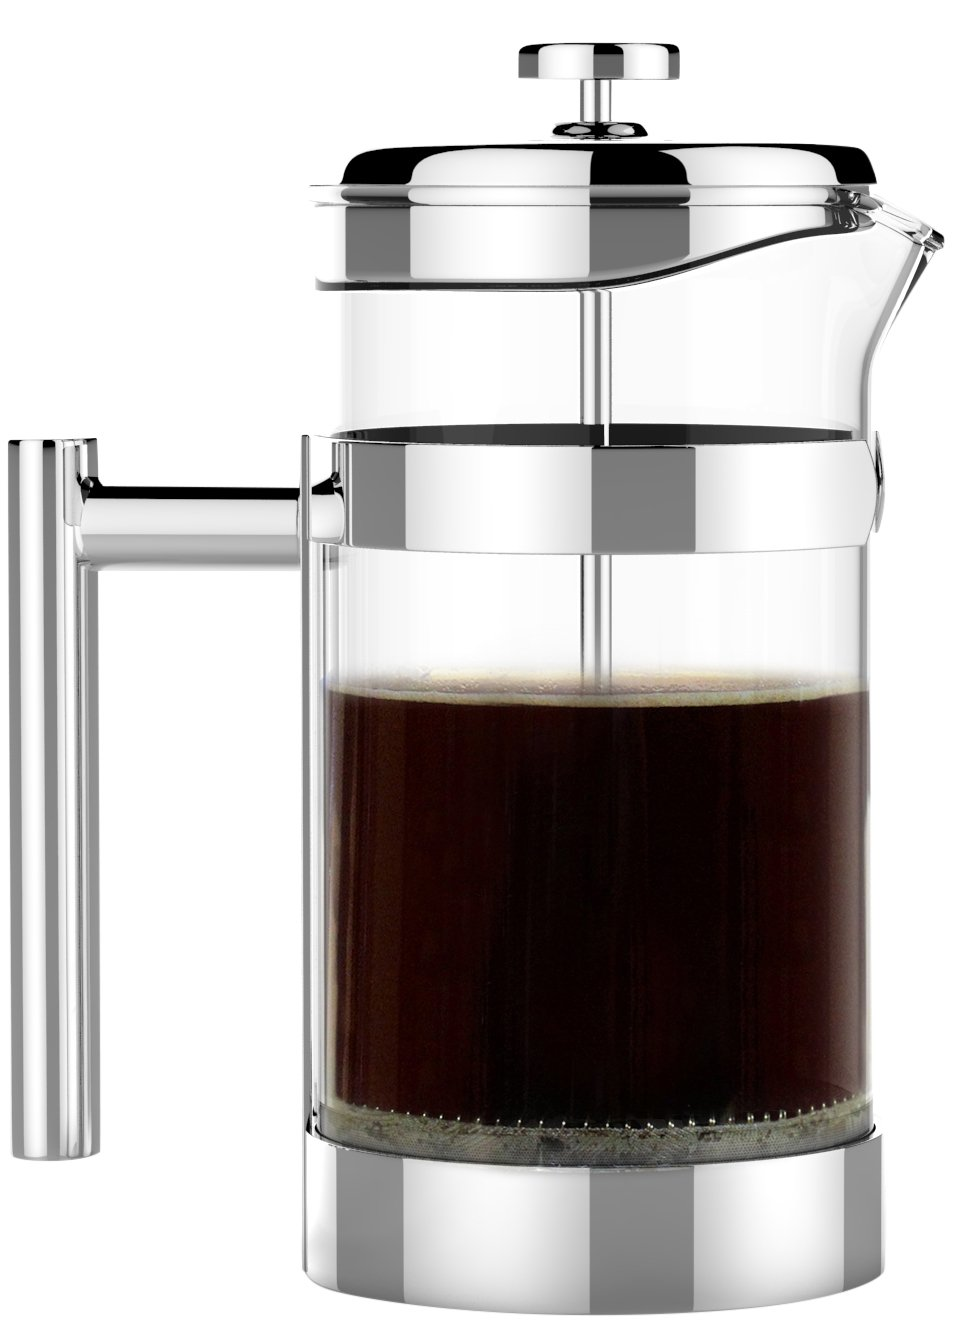 Bed bath beyond french press - Amazon Com The Original Vero Chambord French Press 34oz 1 Liter 1 Best Selling All Stainless Steel And Glass French Press Sovrano International